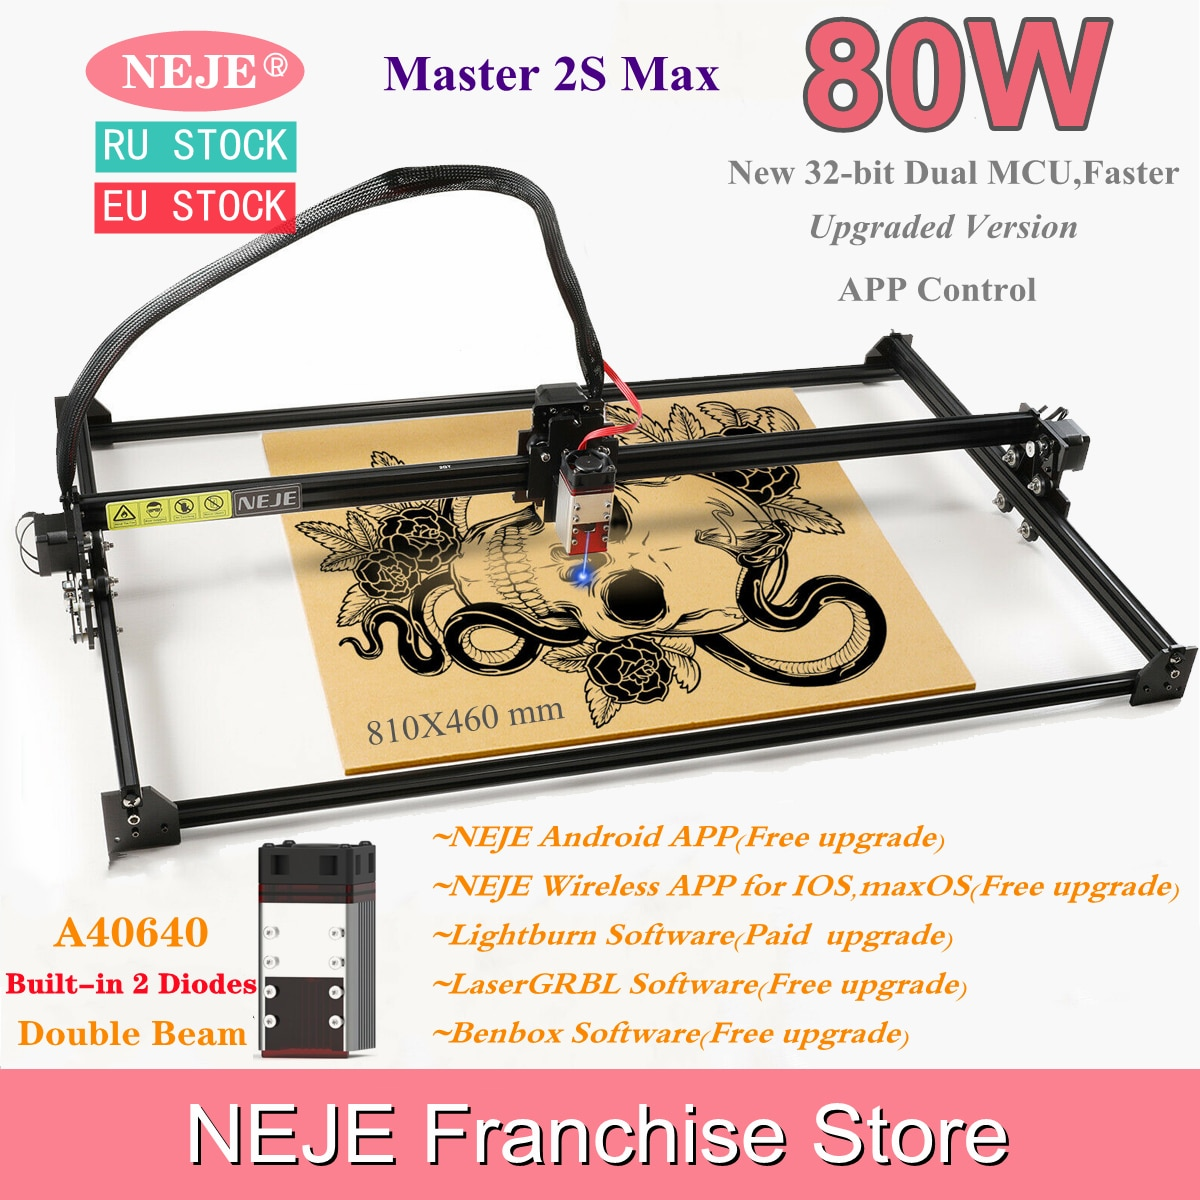 NEJE Master 2S Max 80W CNC Double beam Laser Engraver Cutter Engraving Cutting Machine Bluetooth LaserGRBL Lightburn 460X810mm neje master 2s max 80w cnc double beam laser engraver cutter engraving cutting machine bluetooth lasergrbl lightburn 460x810mm